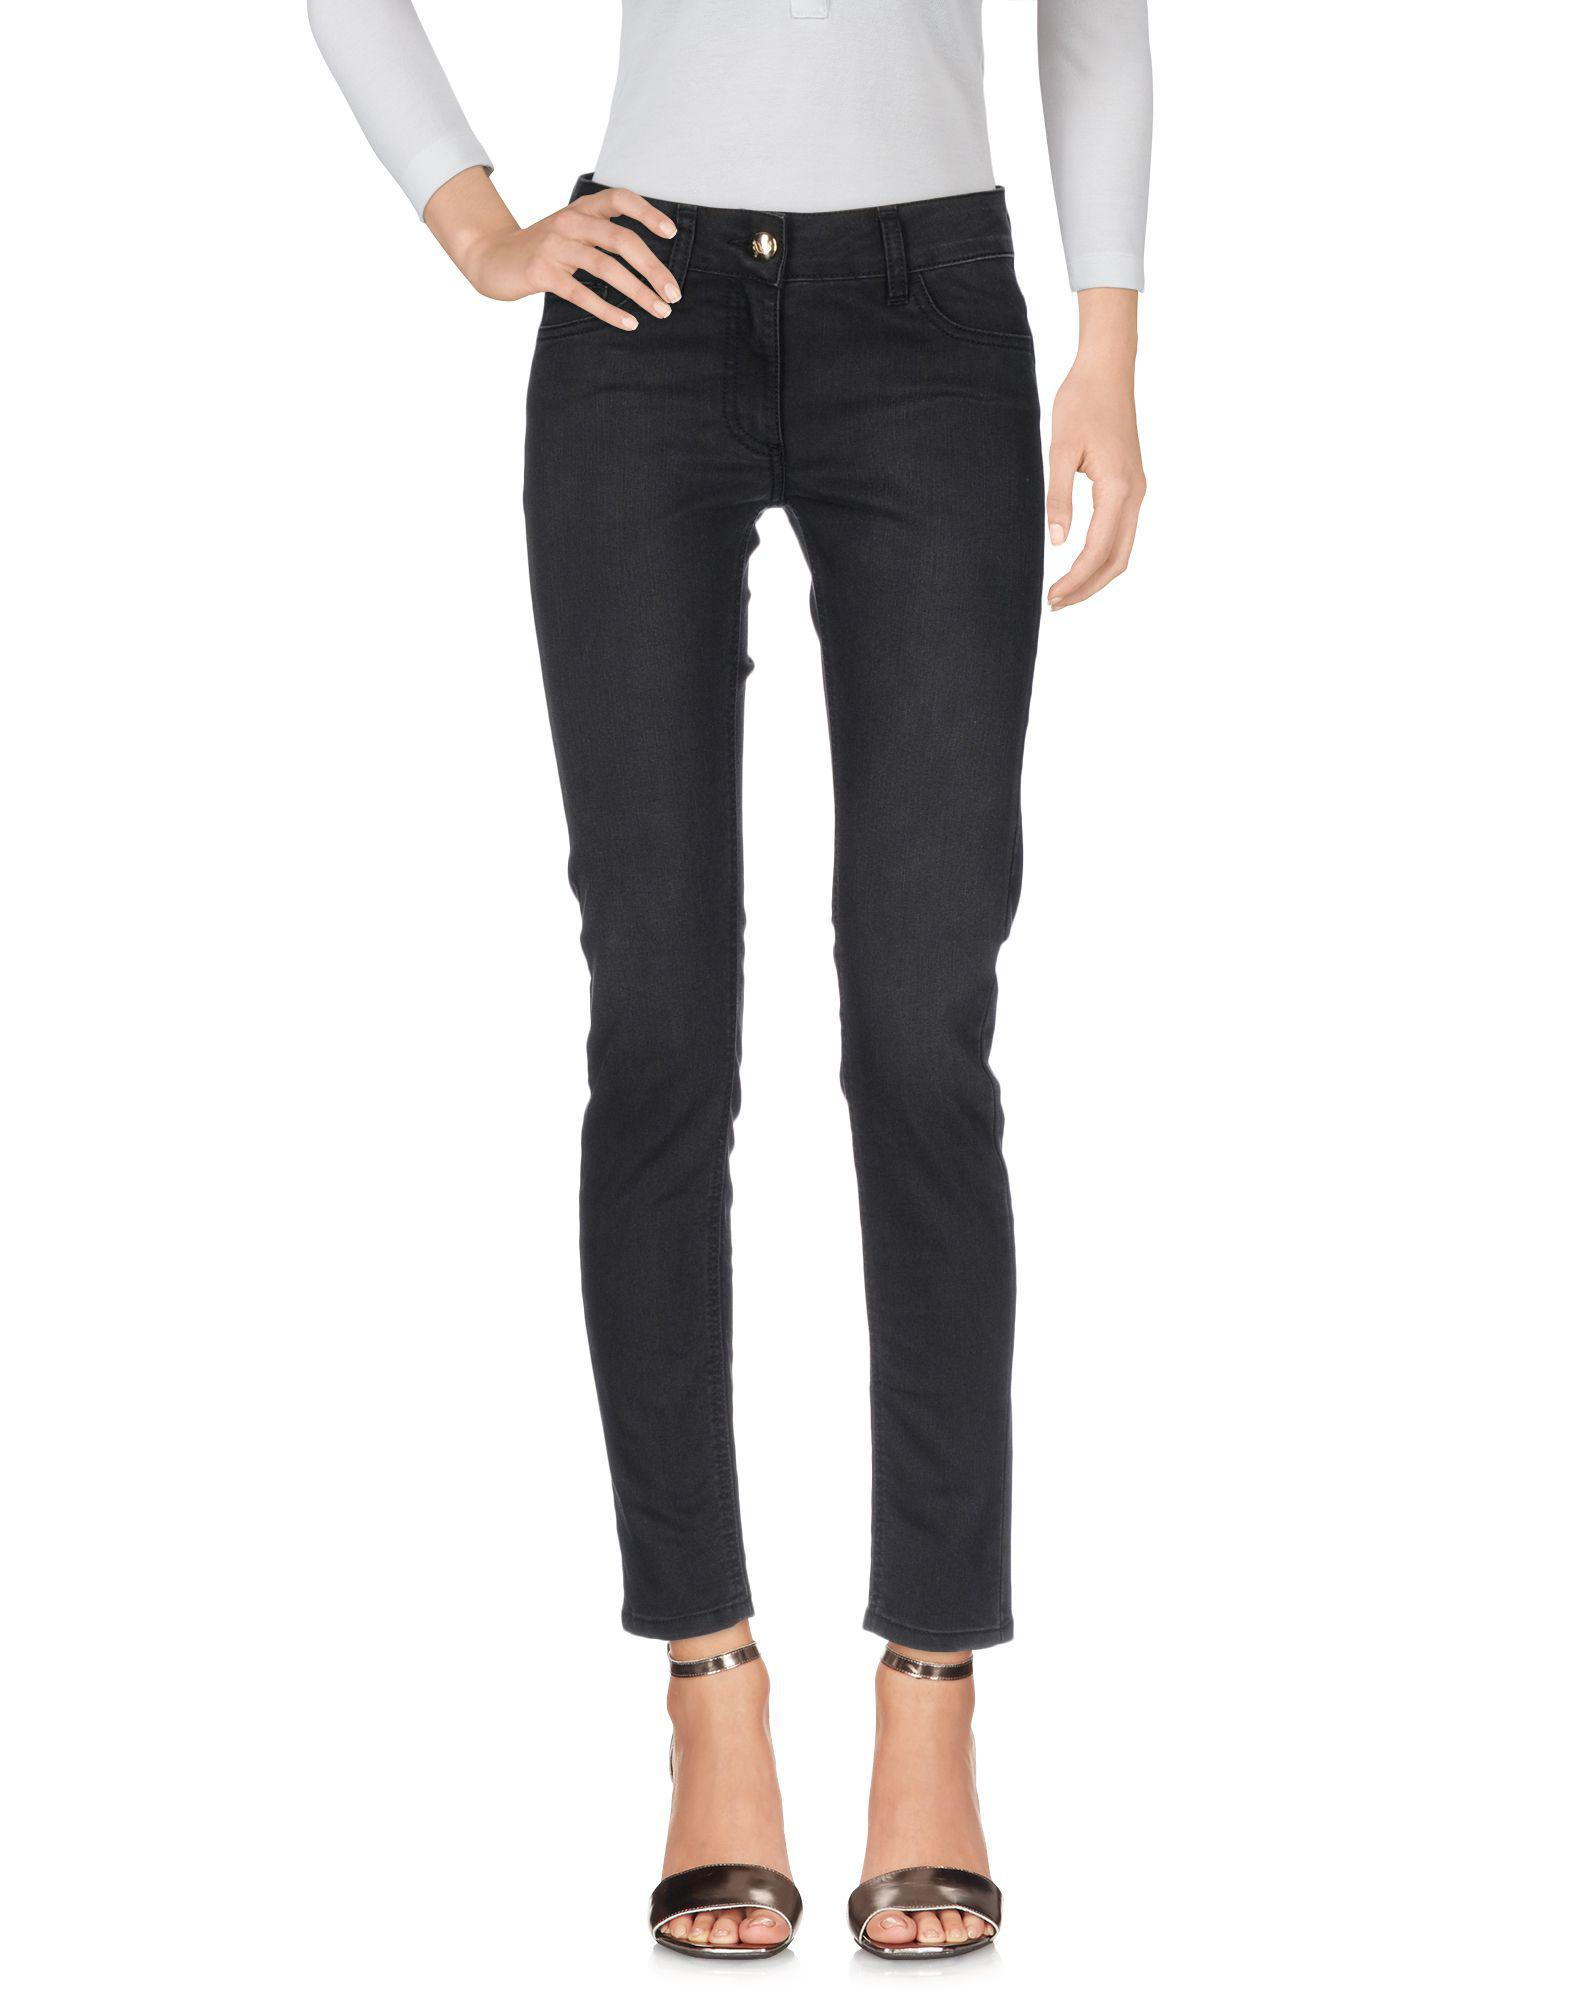 DENIM - Denim trousers Betty Blue Newest Cheap Price With Paypal Shop For Sale Online Many Colors v3Iv16